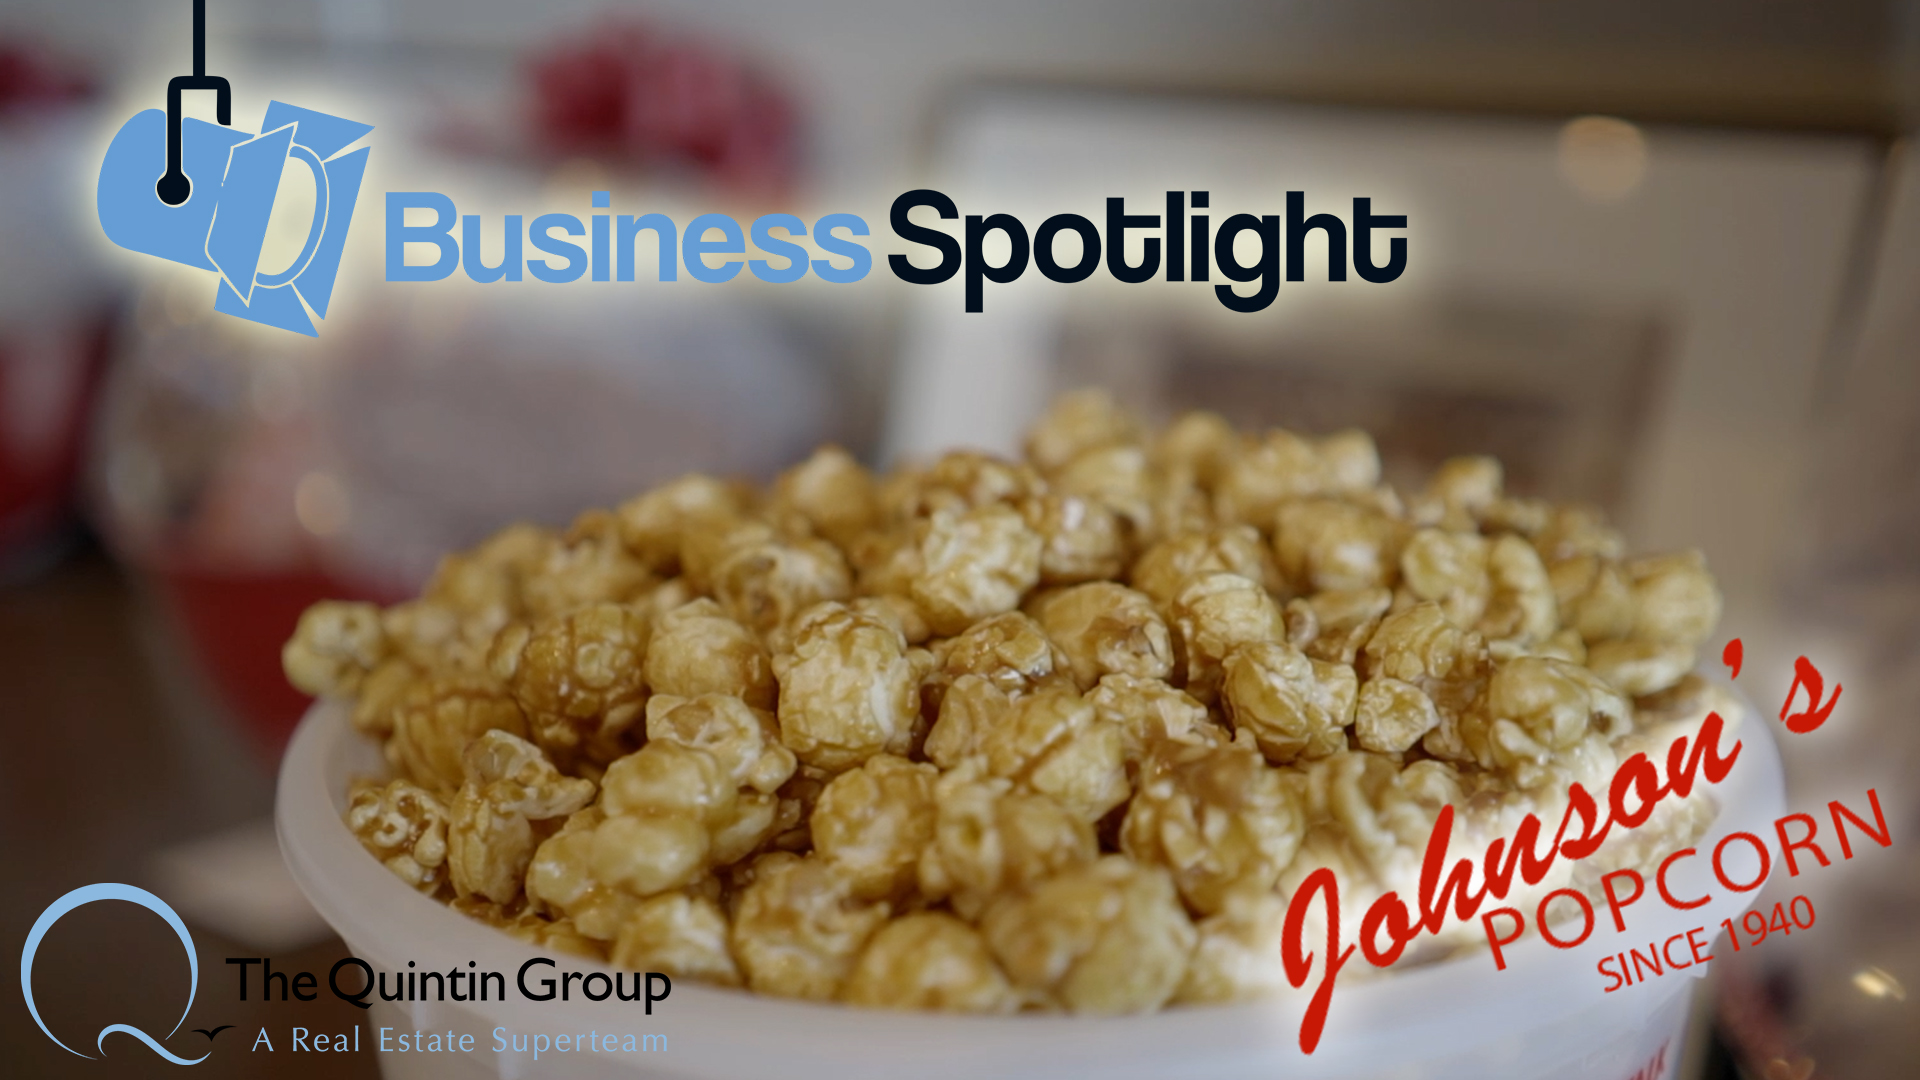 Business Spotlight: Johnson's Popcorn